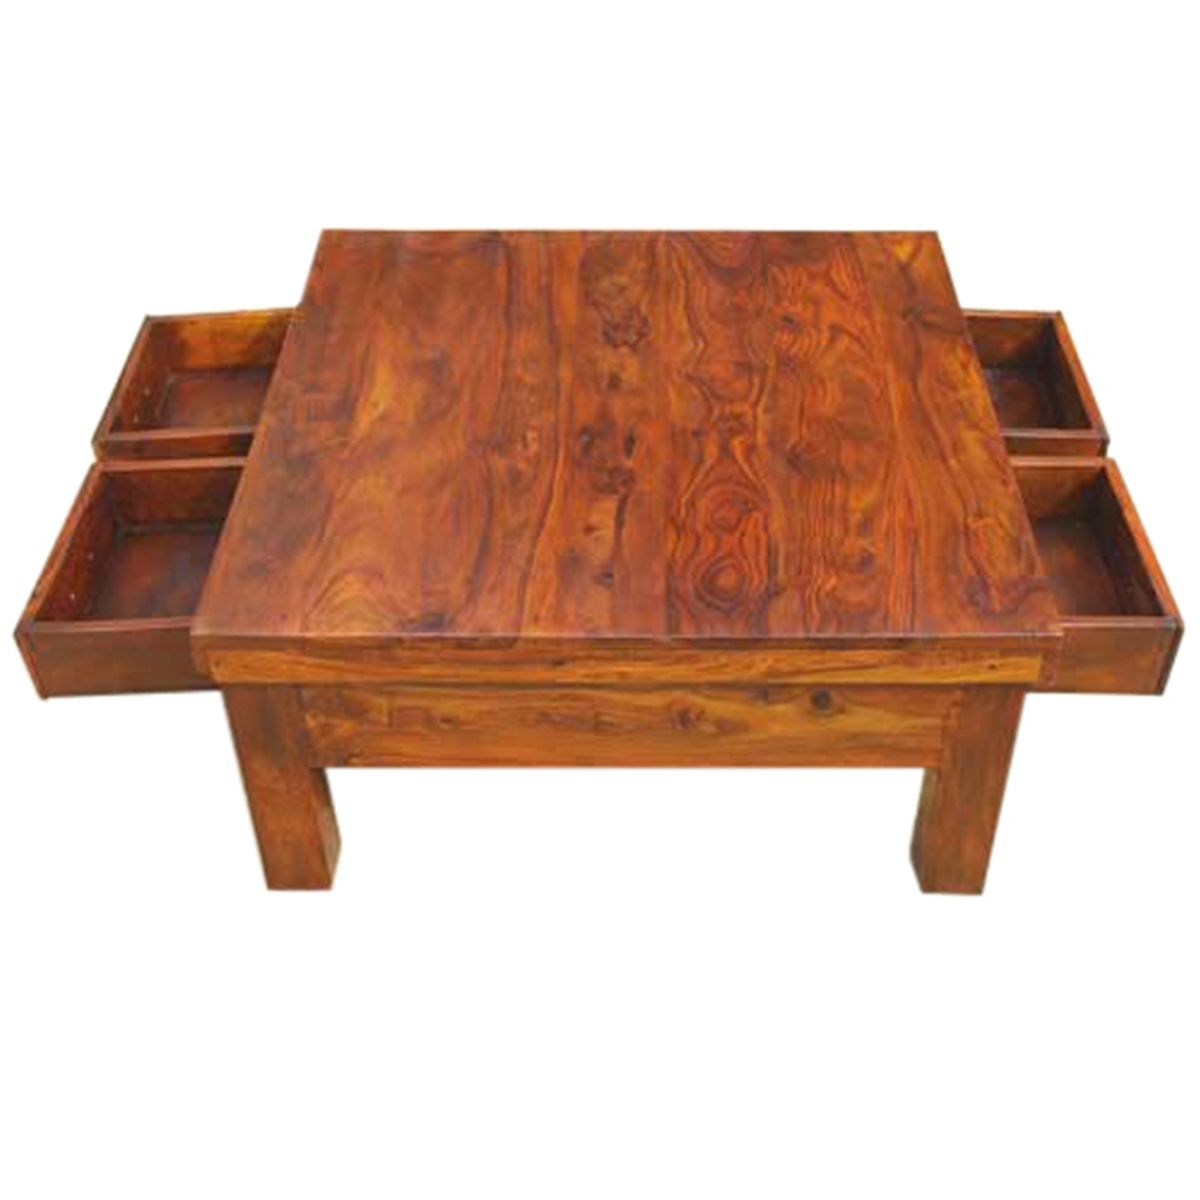 Classic Solid Wood 4 Drawers Square Storage Coffee Table Coffee